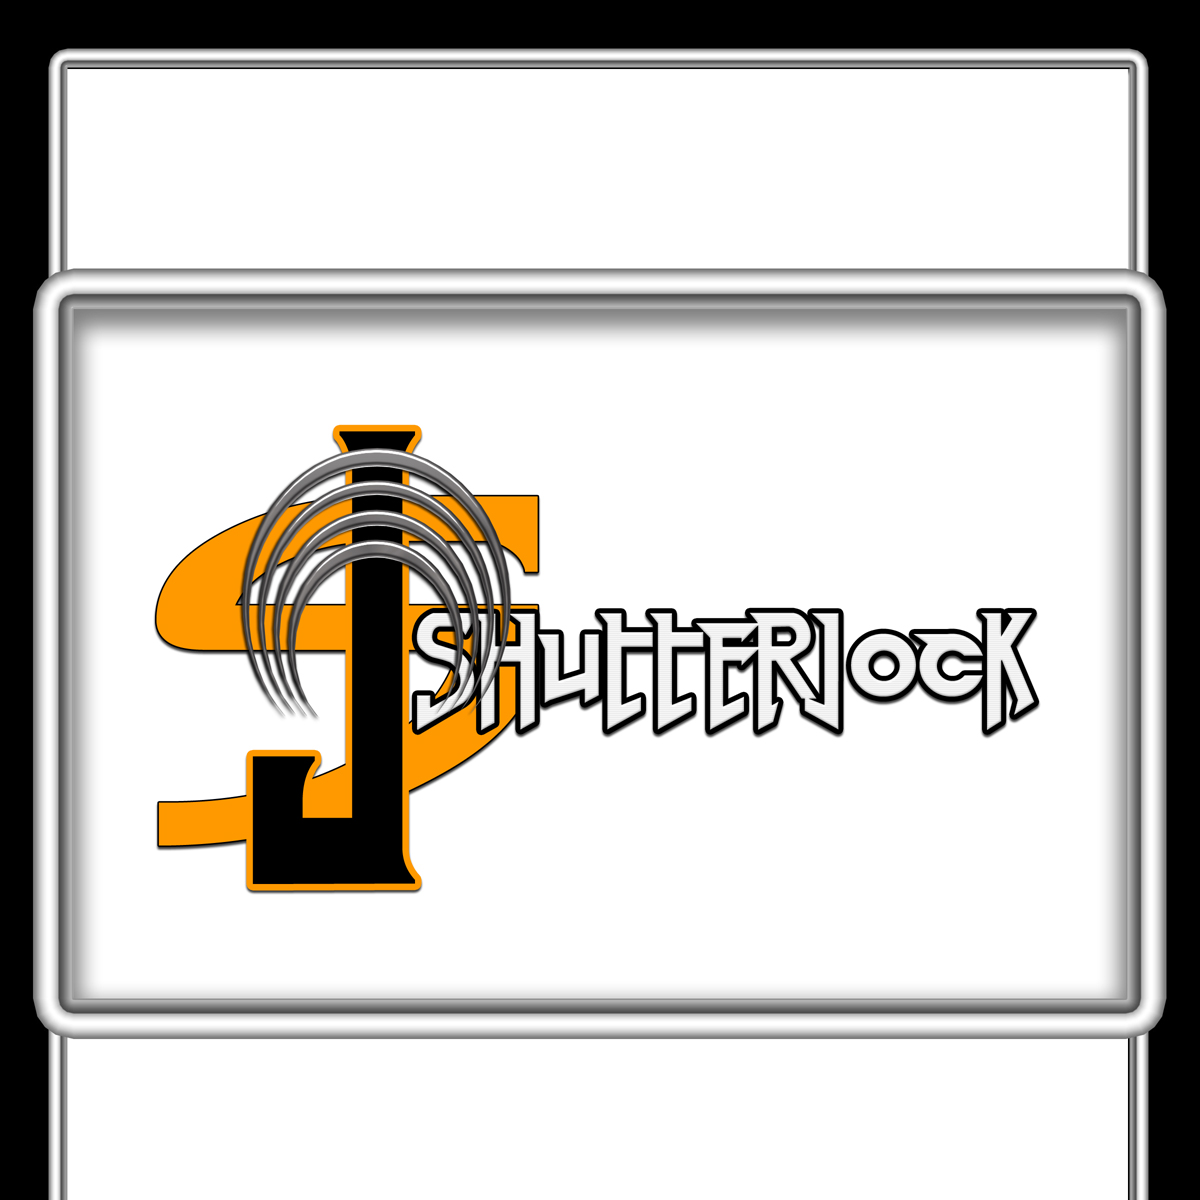 Logo Design by MITUCA ANDREI - Entry No. 7 in the Logo Design Contest Unique Logo Design Wanted for Shutterjock LLC.